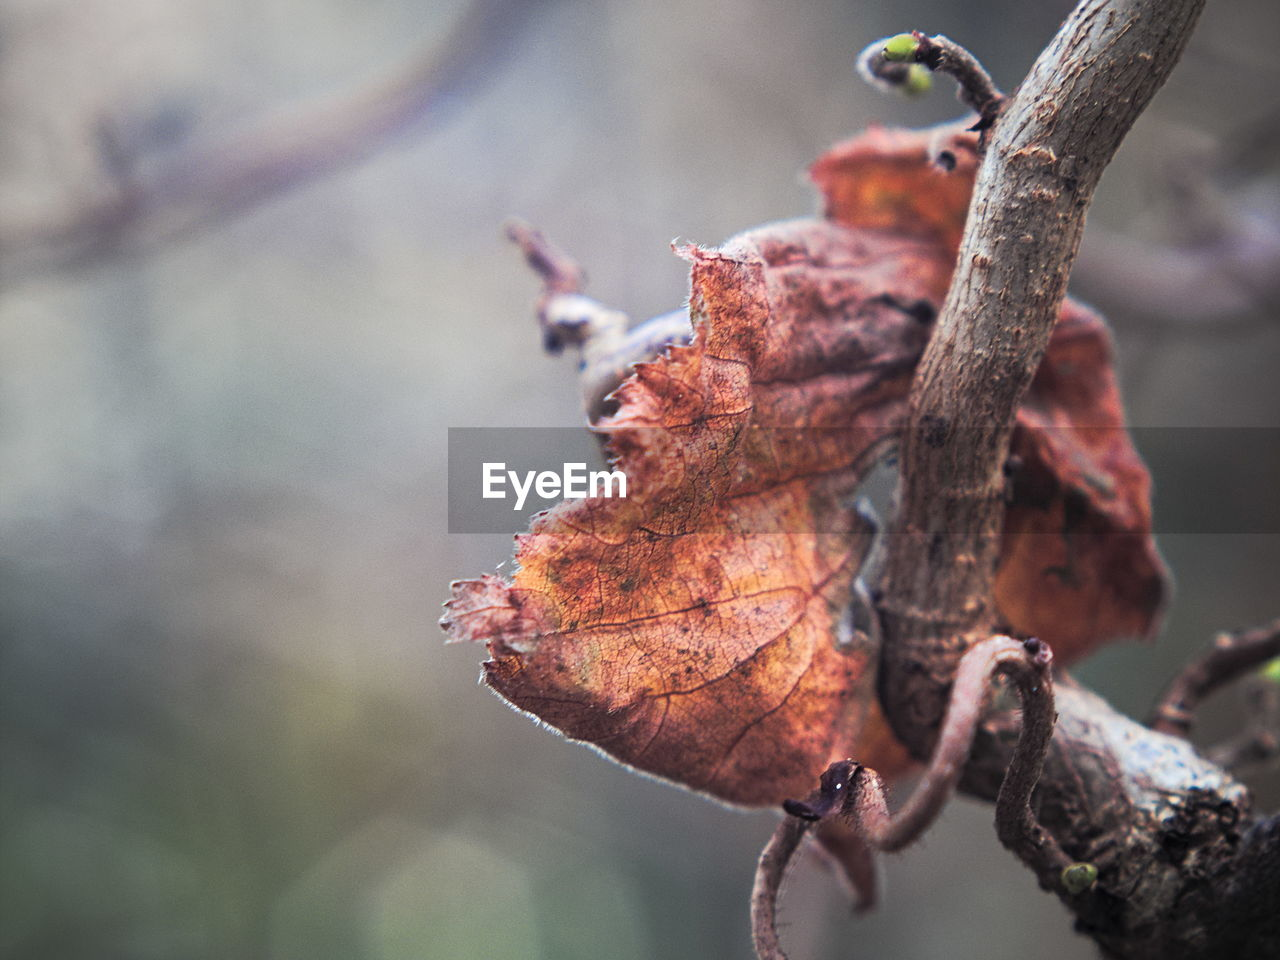 plant part, leaf, autumn, focus on foreground, close-up, plant, nature, change, tree, day, dry, selective focus, beauty in nature, no people, growth, vulnerability, branch, fragility, outdoors, brown, leaves, dried, dead plant, natural condition, maple leaf, wilted plant